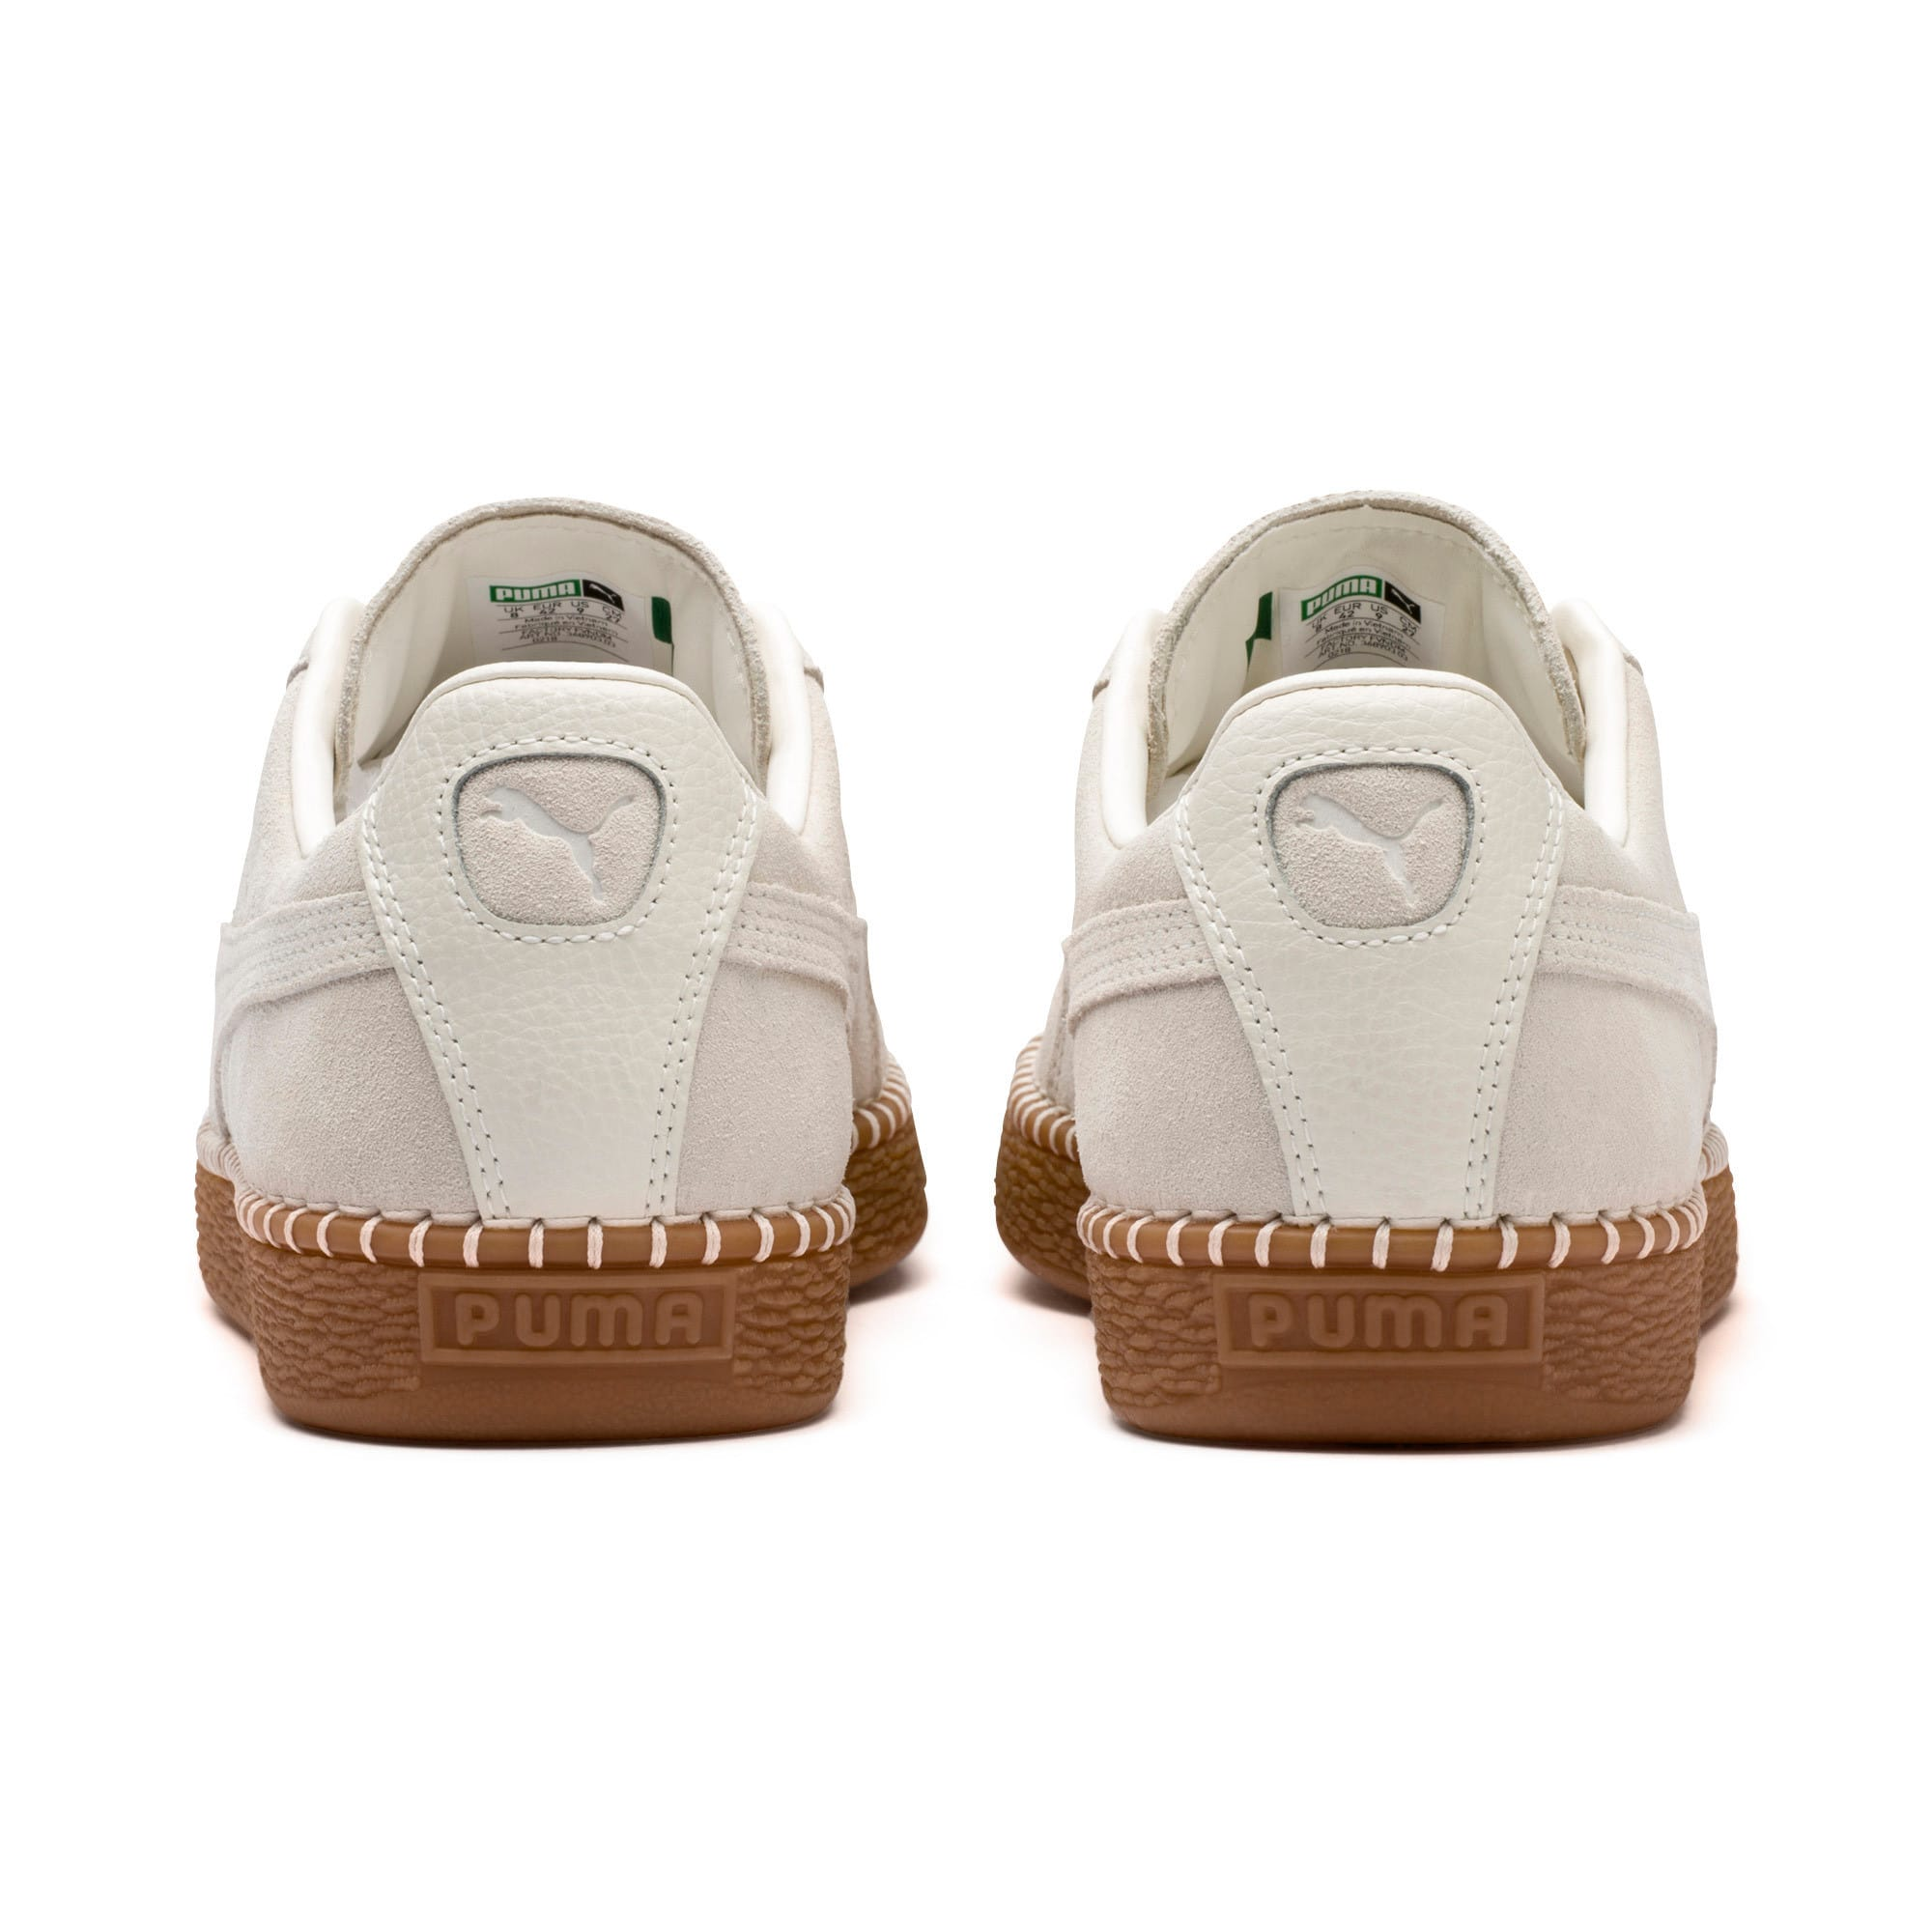 Thumbnail 4 of Suede Classic Blanket Stitch Trainers, Whisper White-Gum, medium-IND